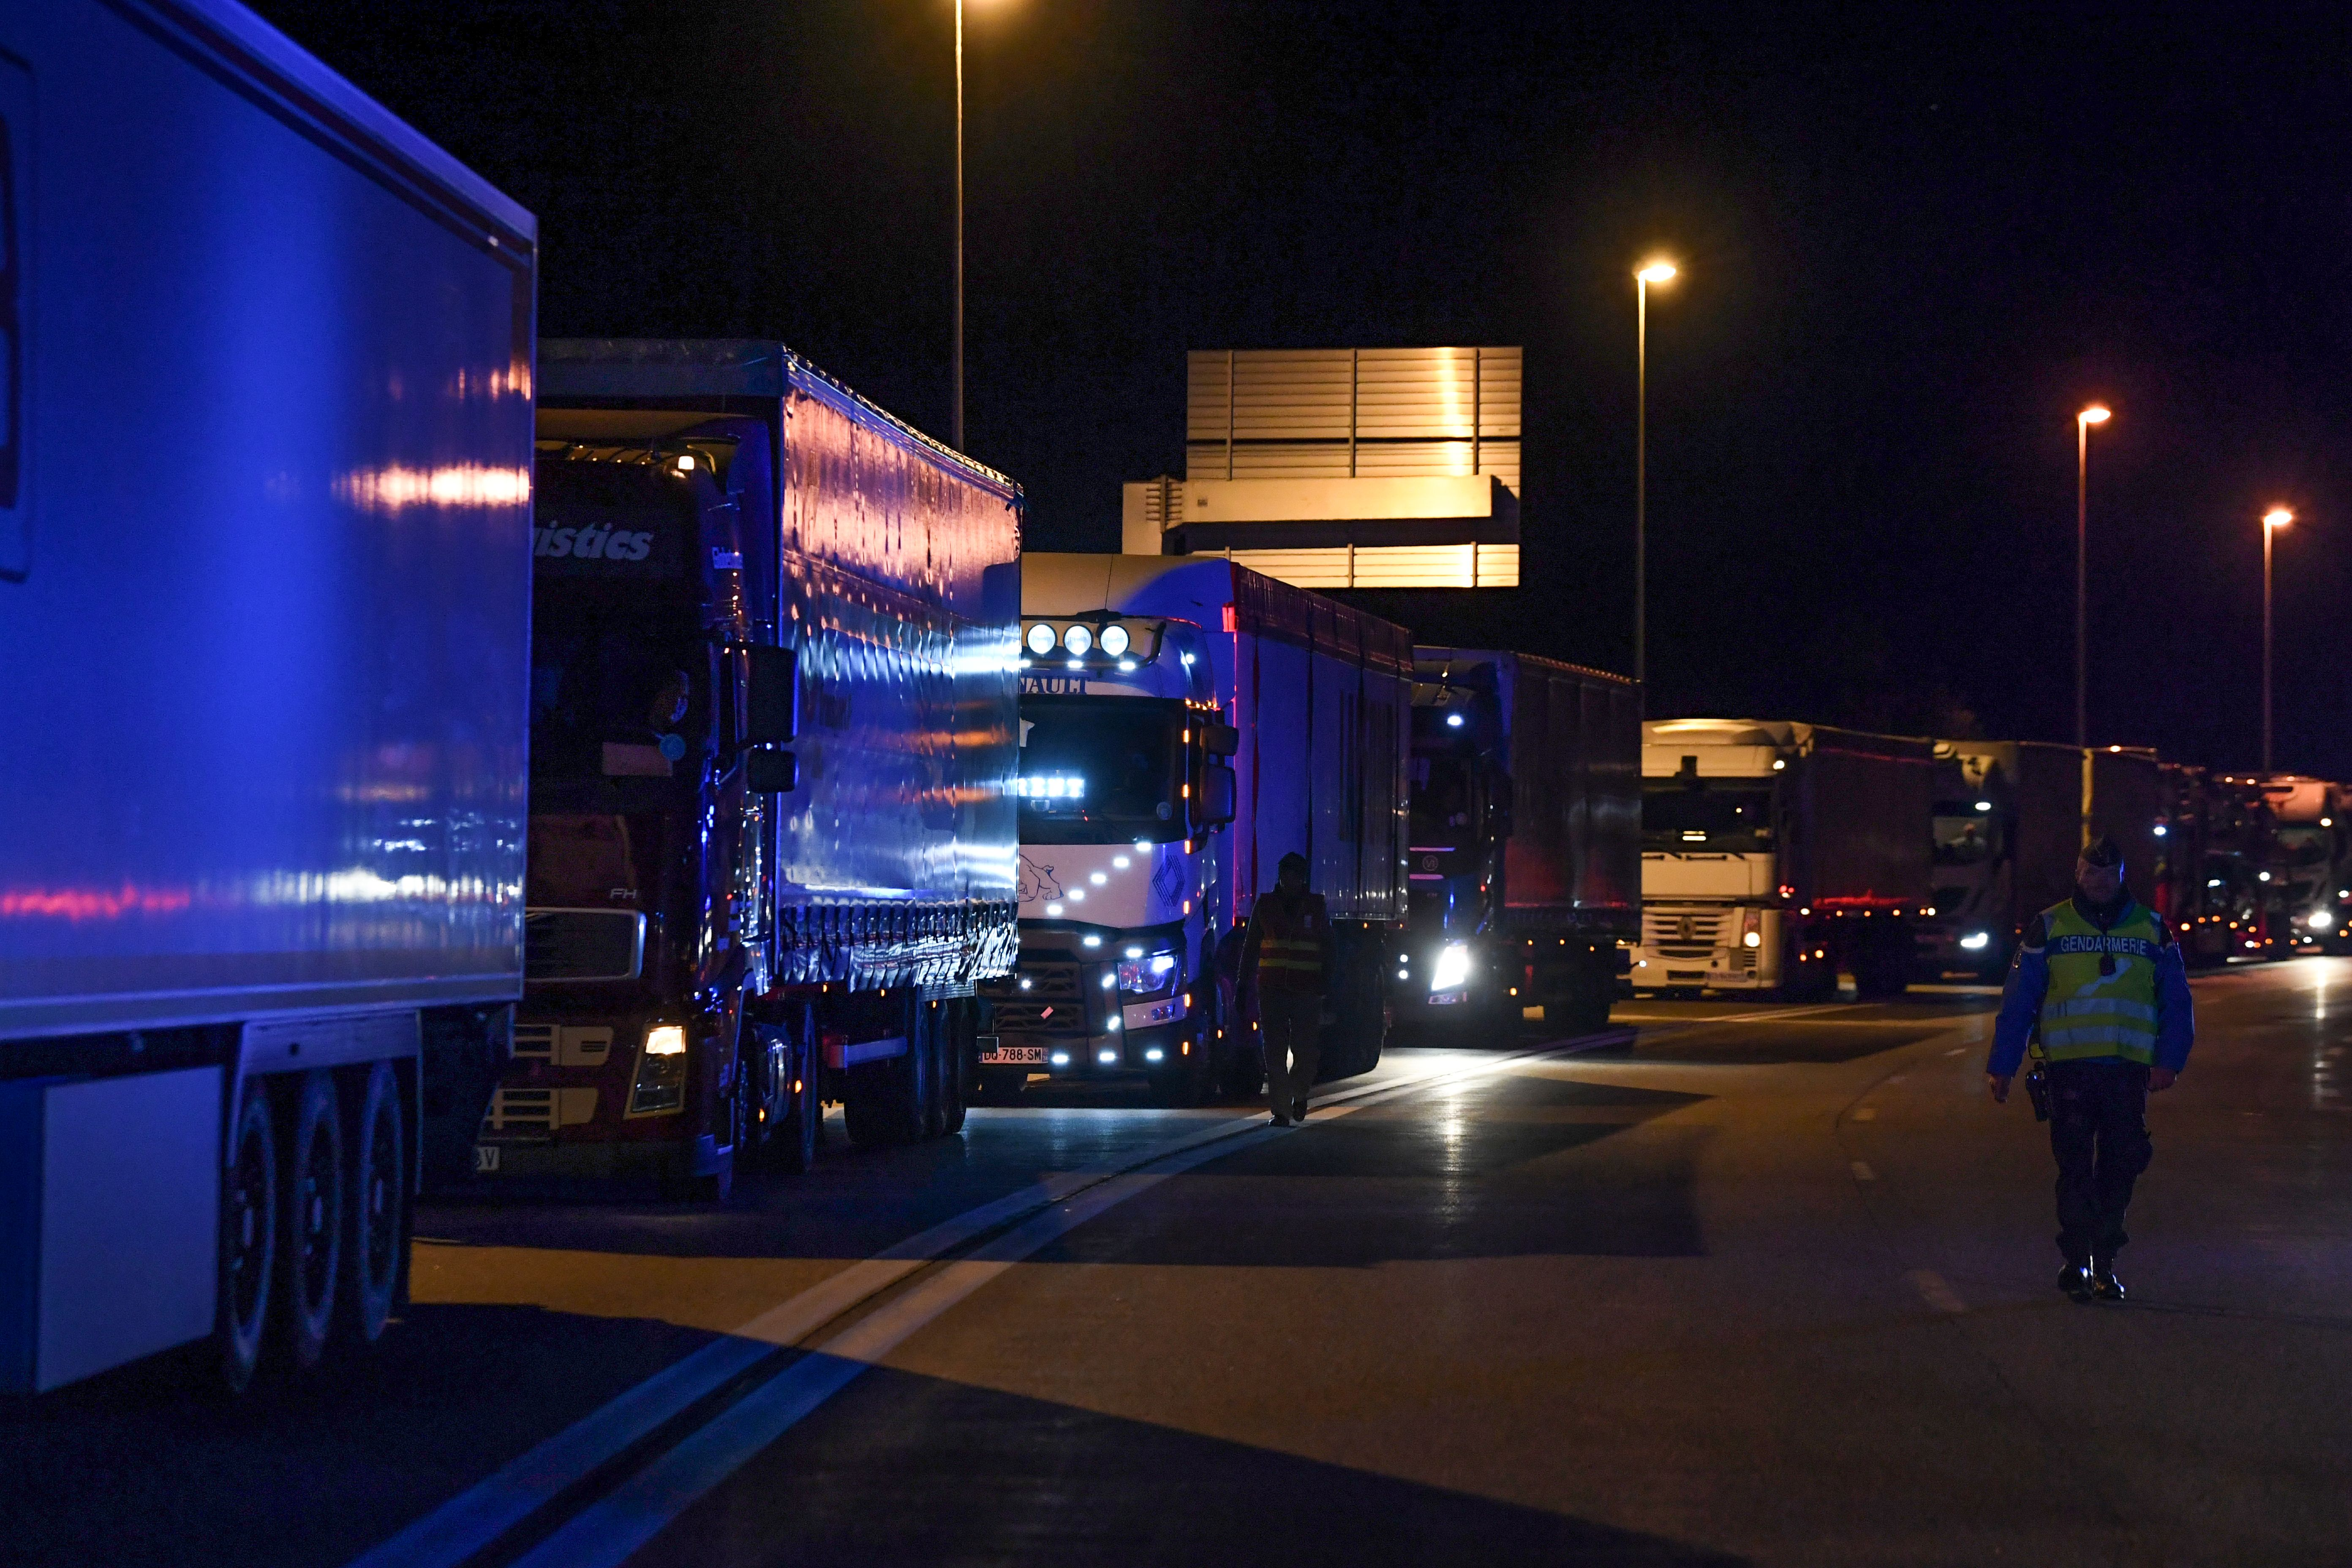 A Gendarme (R) walks along transport trucks lined up during a blockade to access to the Frejus tunnel, early on November 21, 2017 close to the border between France and Italy in Modane. About 50 truck drivers were blocking on November 21 the tunnel access, a major traffic route between France and Italy, to protest against the exclusion of road transport from the new European directive on posted workers. (Photo by Jean-Pierre Clatot/AFP via Getty Images)